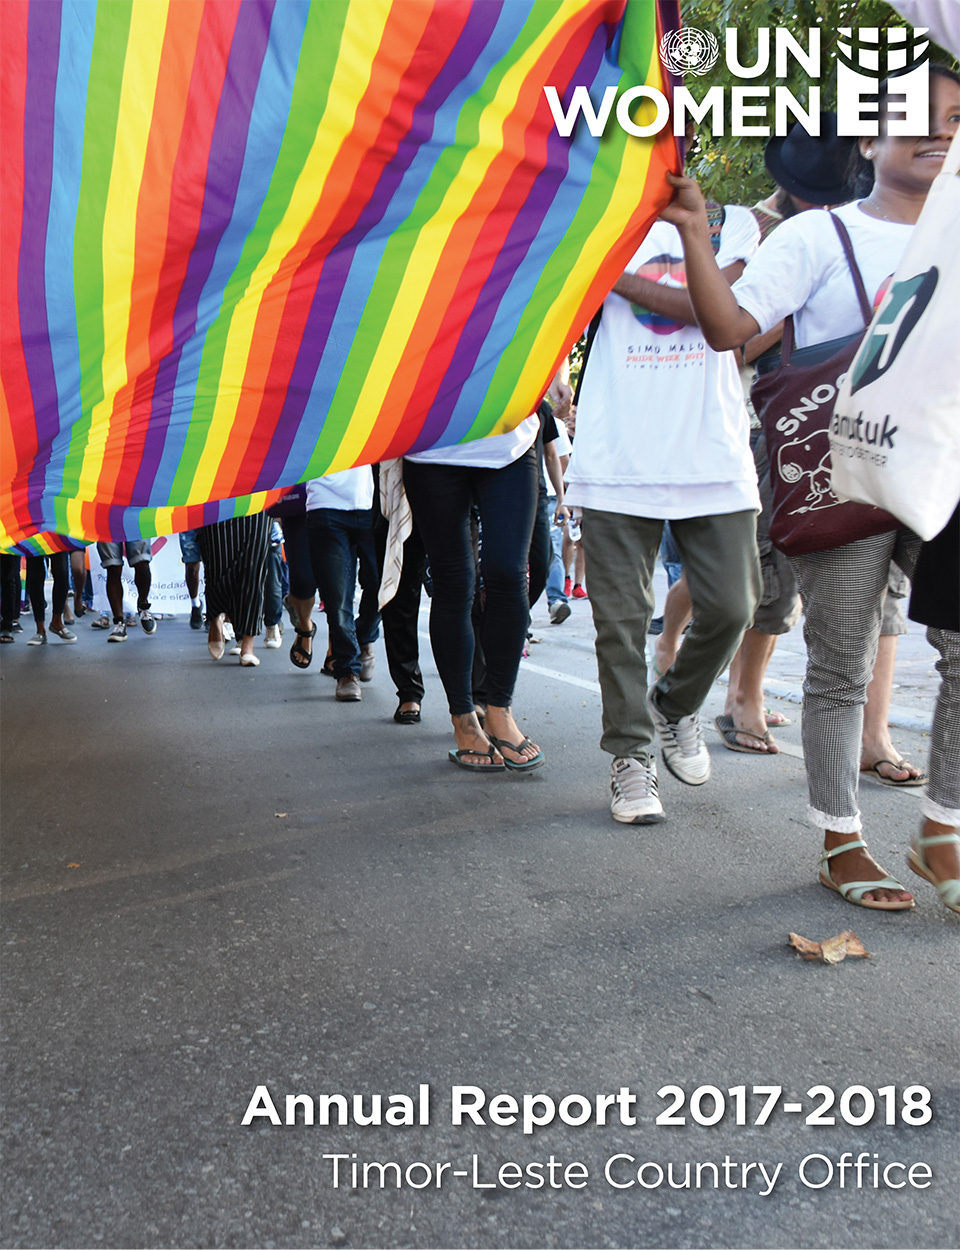 UN Women Timor-Leste Annual Report 2016-2017